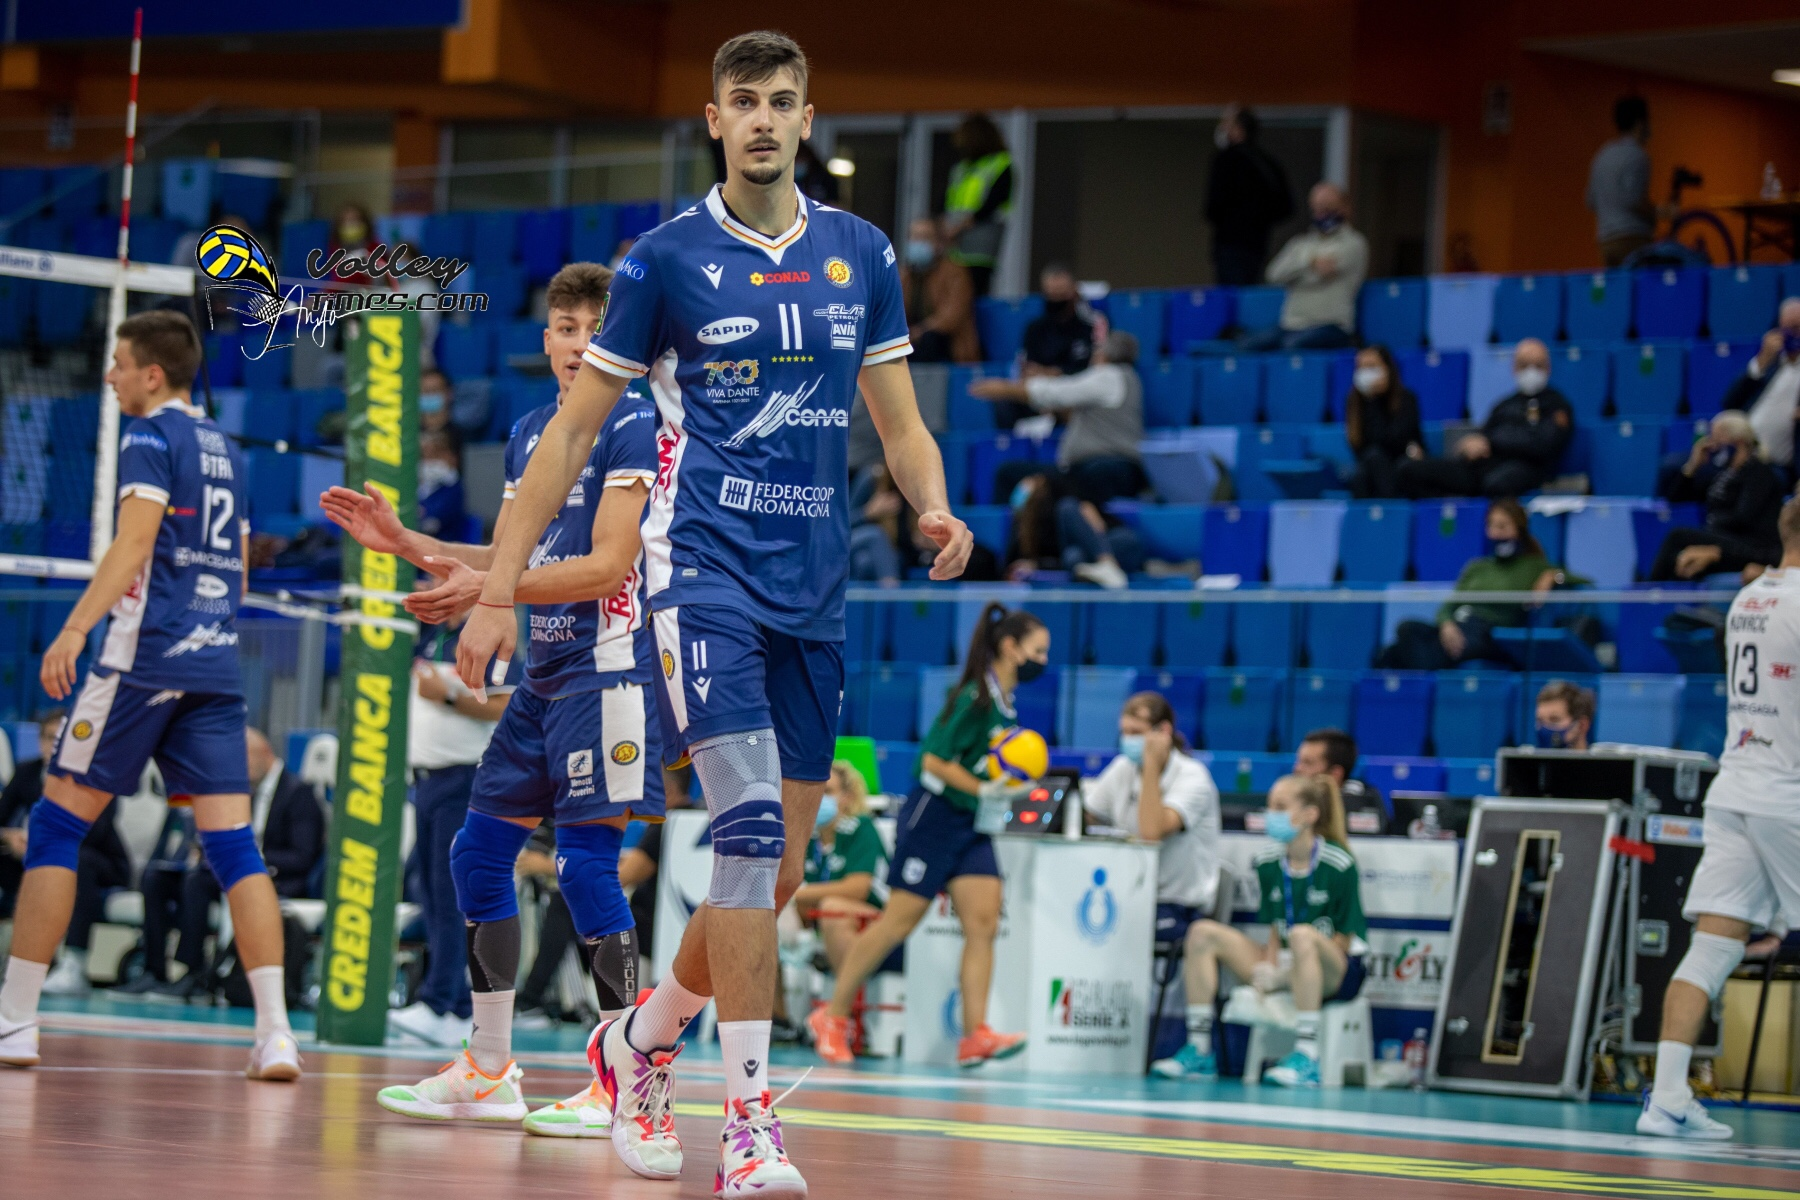 Italy: Grozdanov from Ravenna to Monza